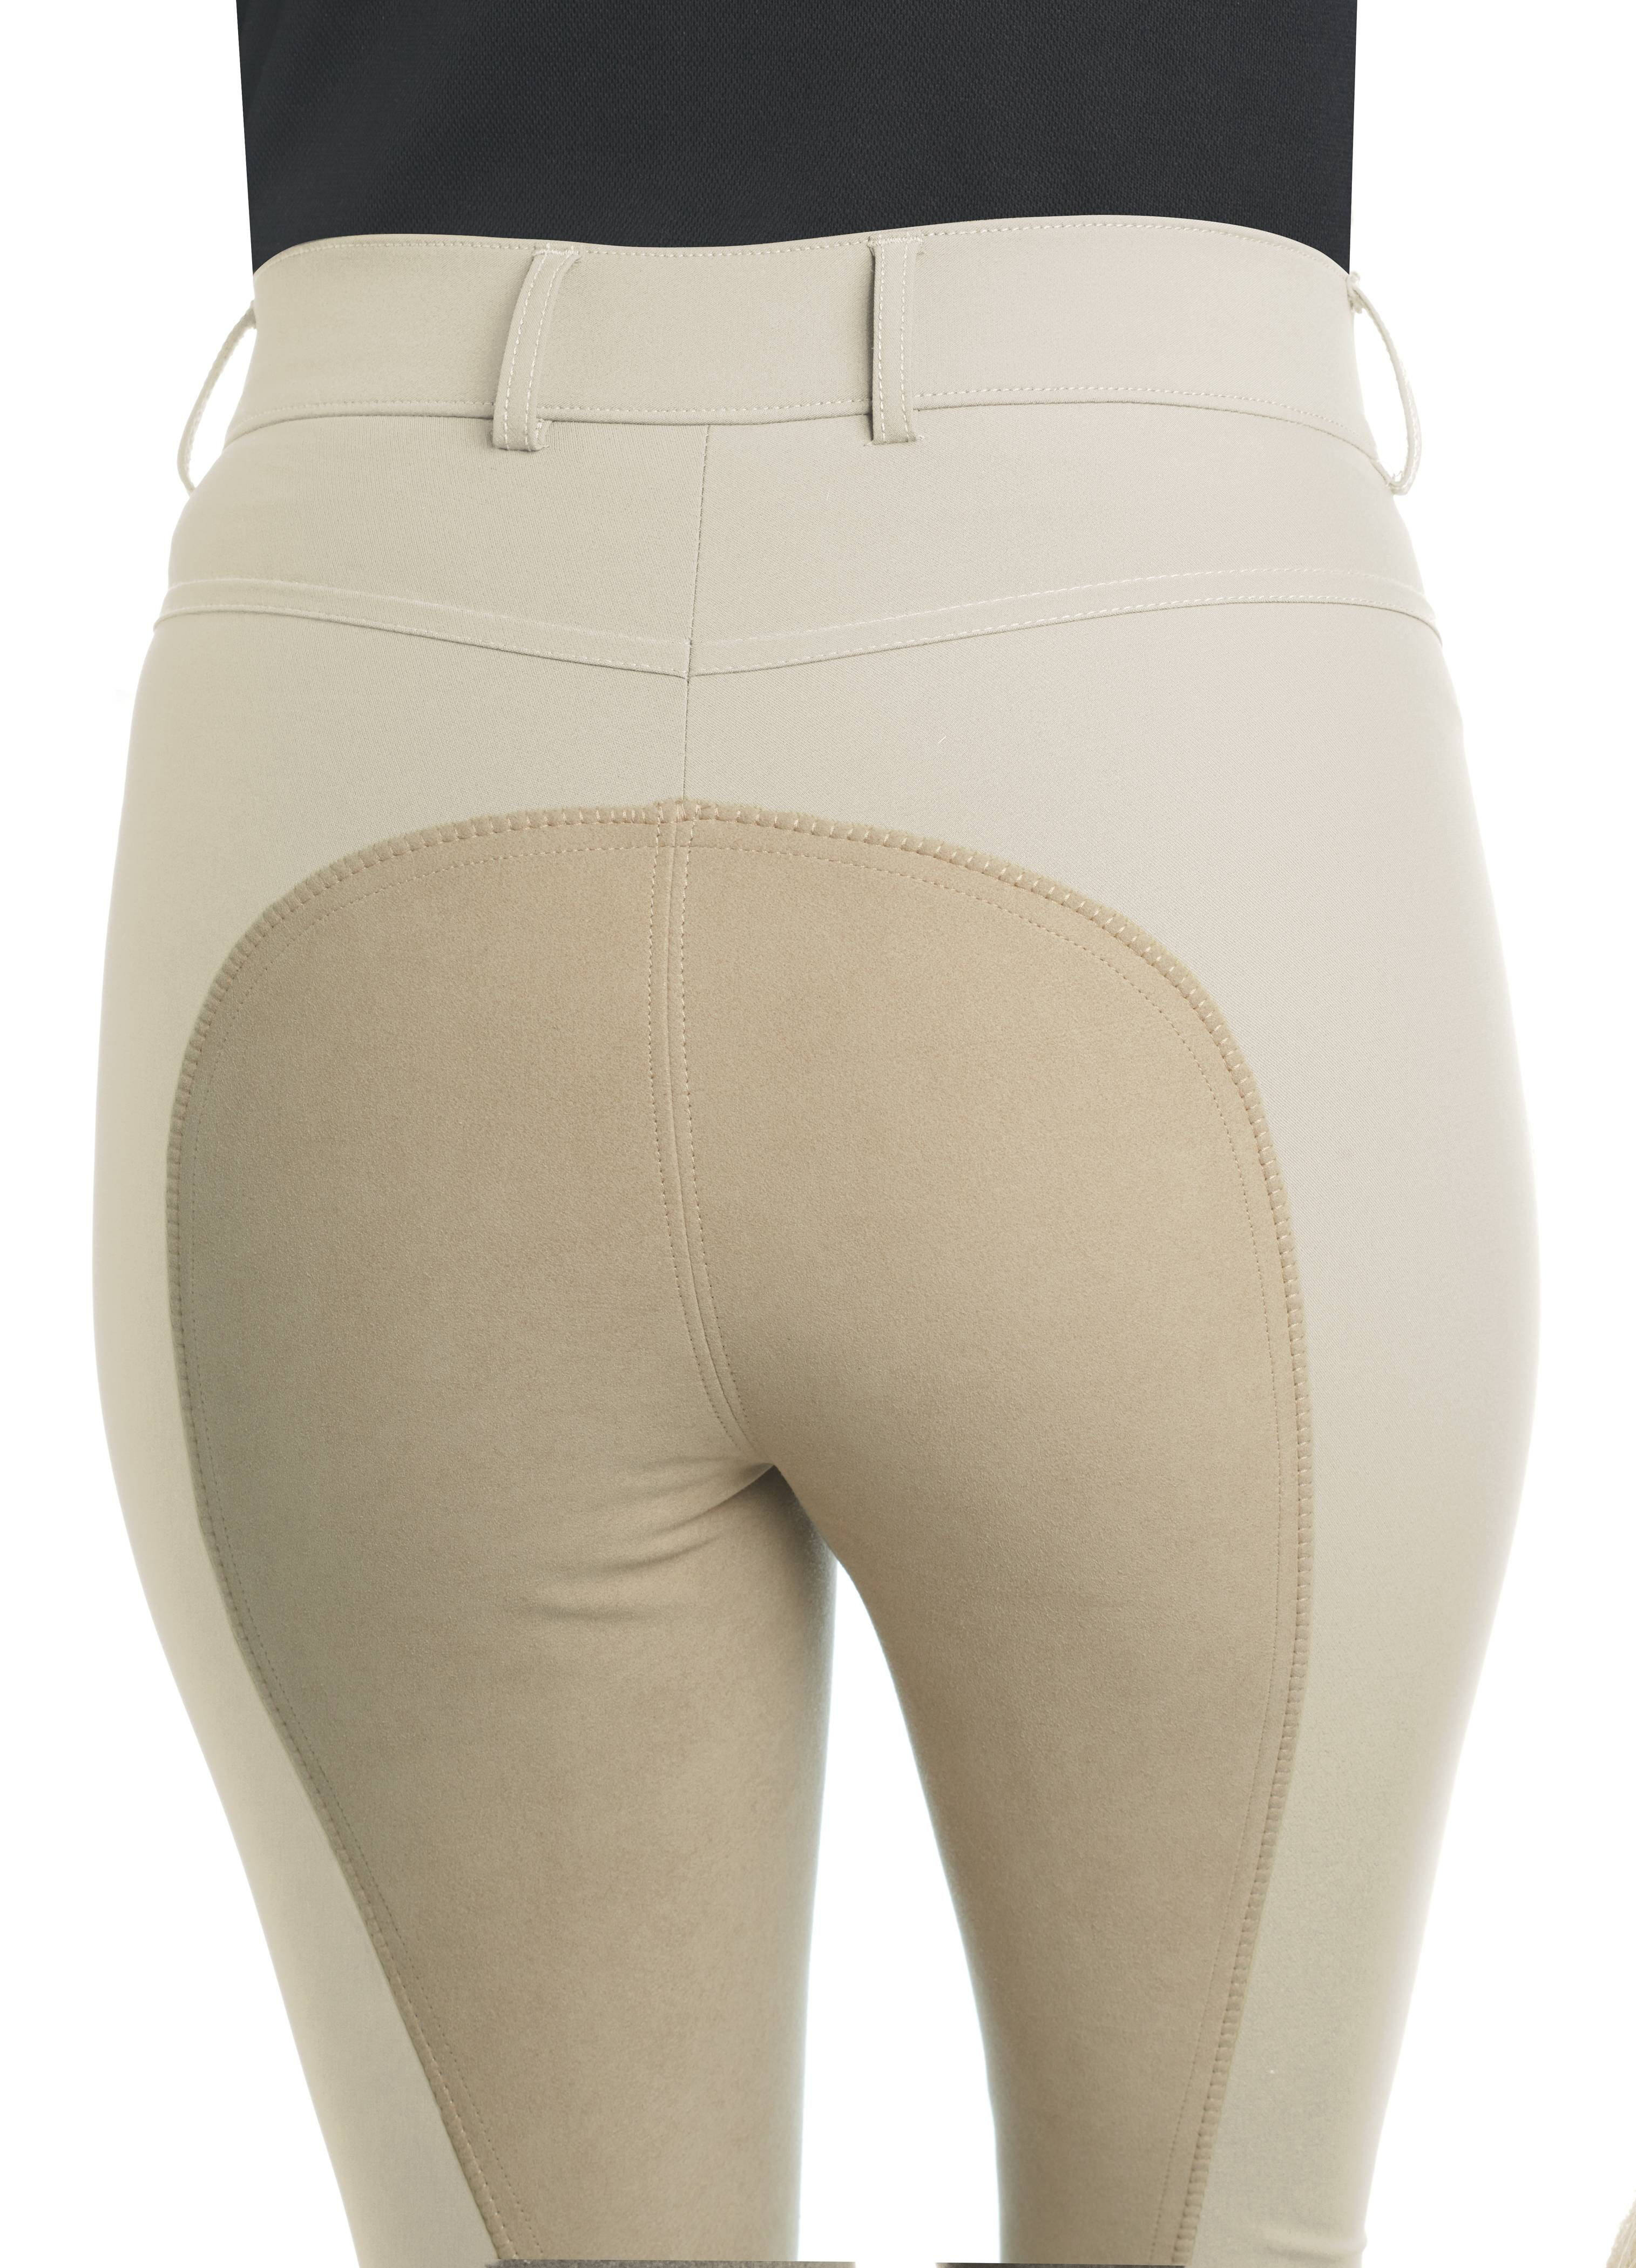 Ovation Aqua-X Slim Secret Full Seat Breeches-Ladies